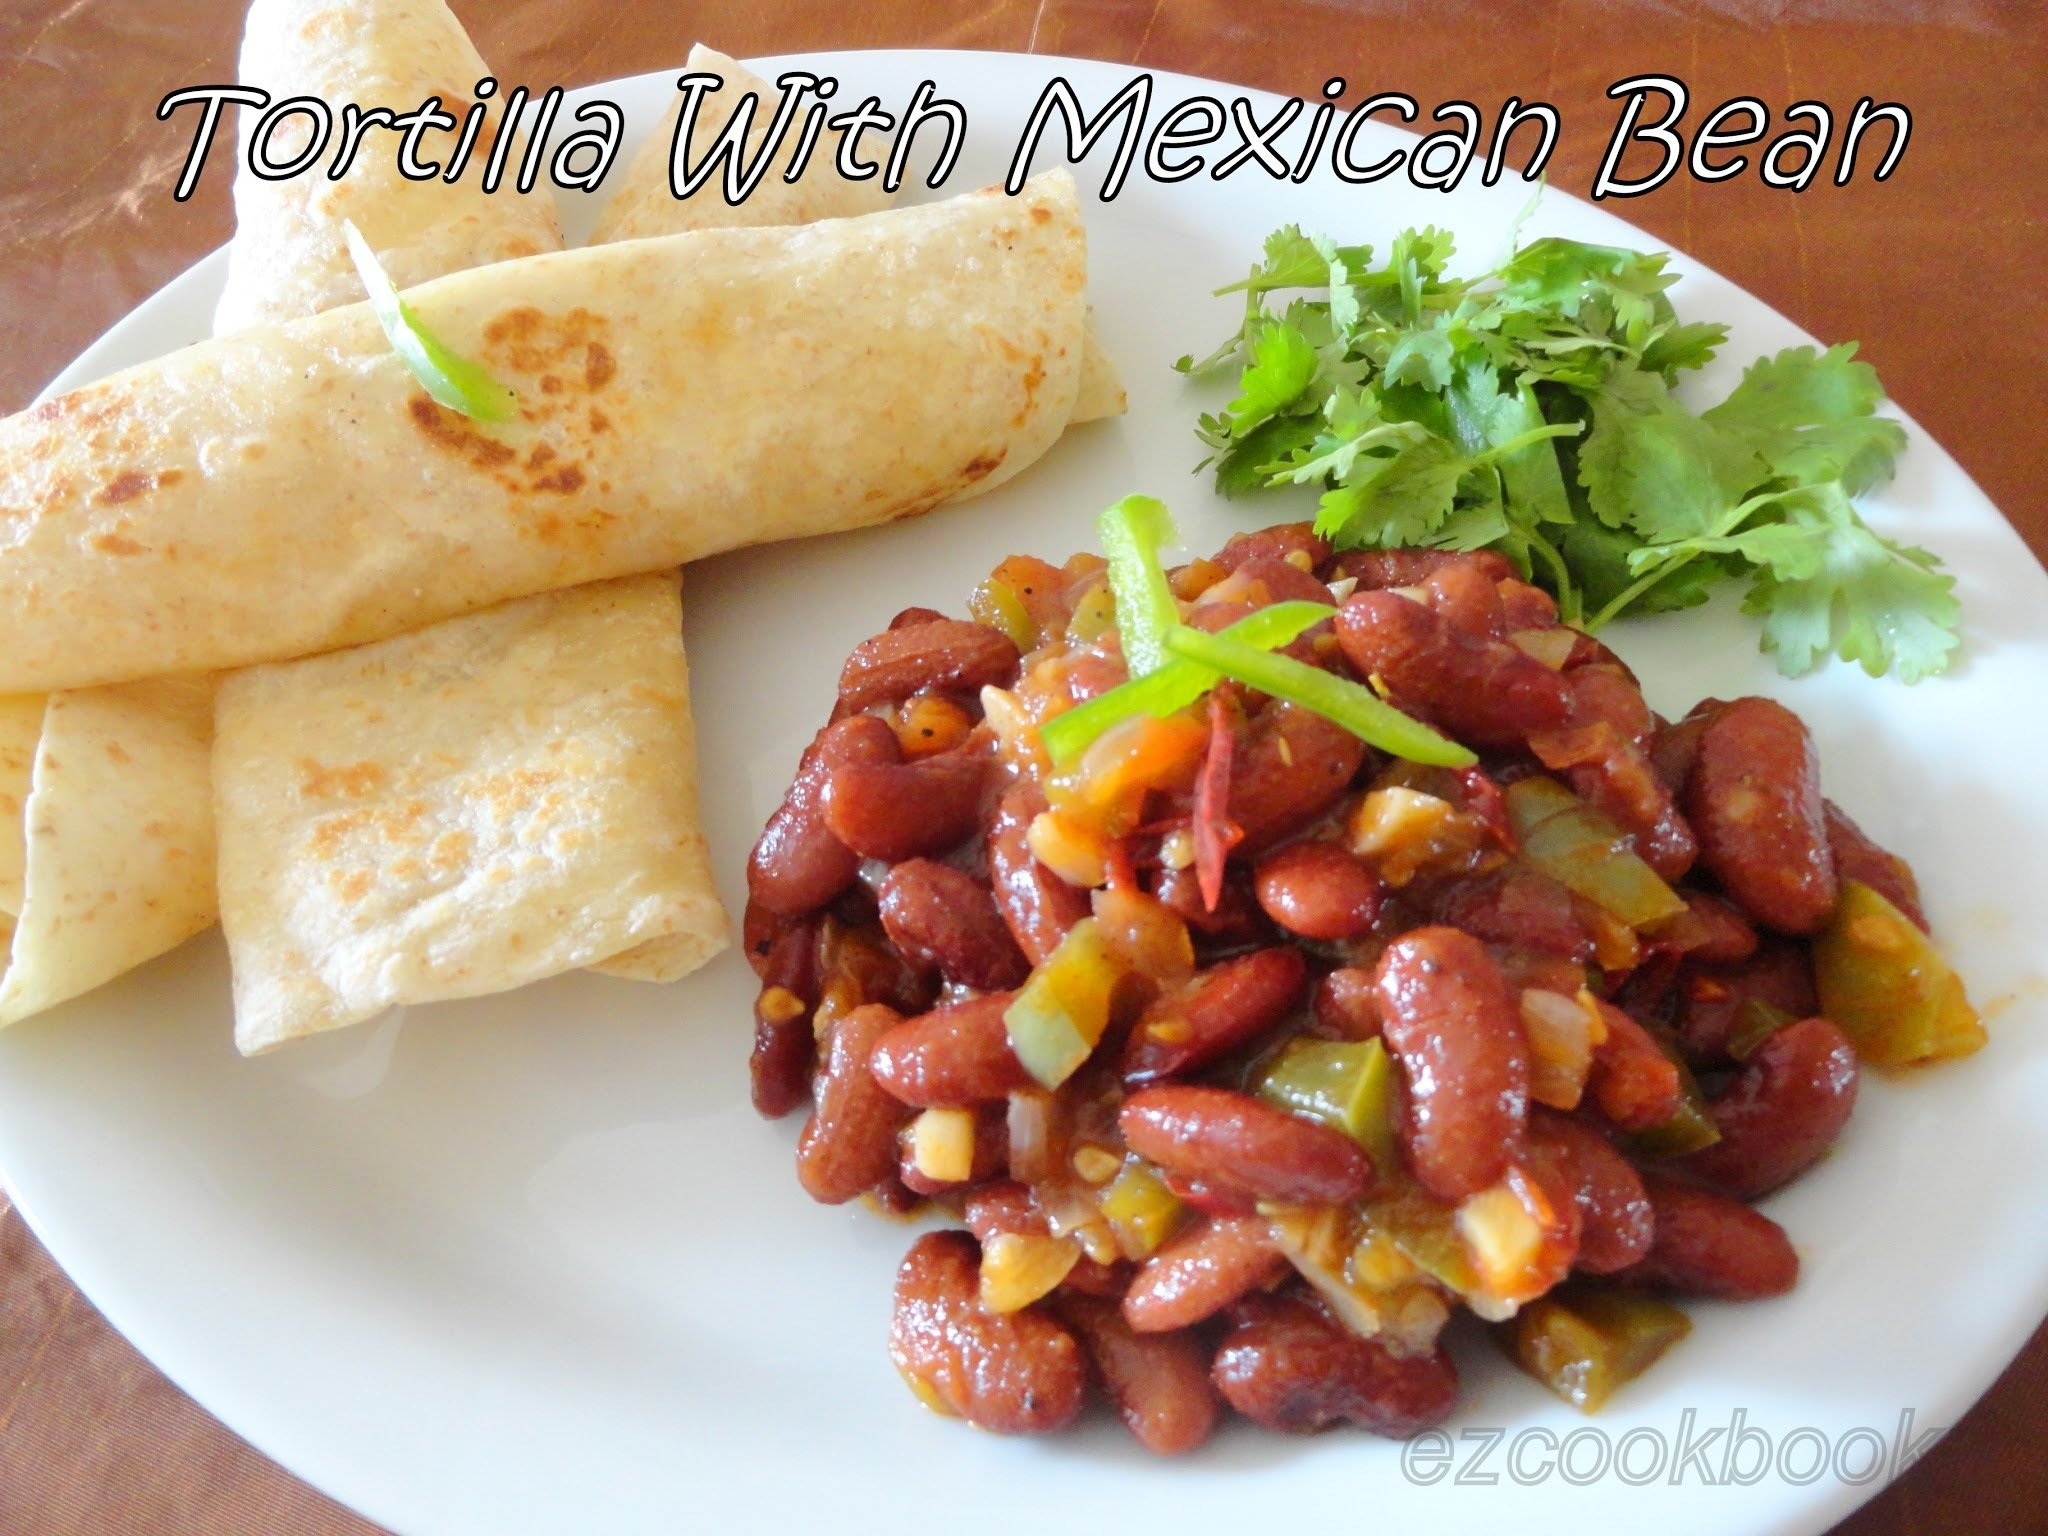 Tortilla With Mexican Bean